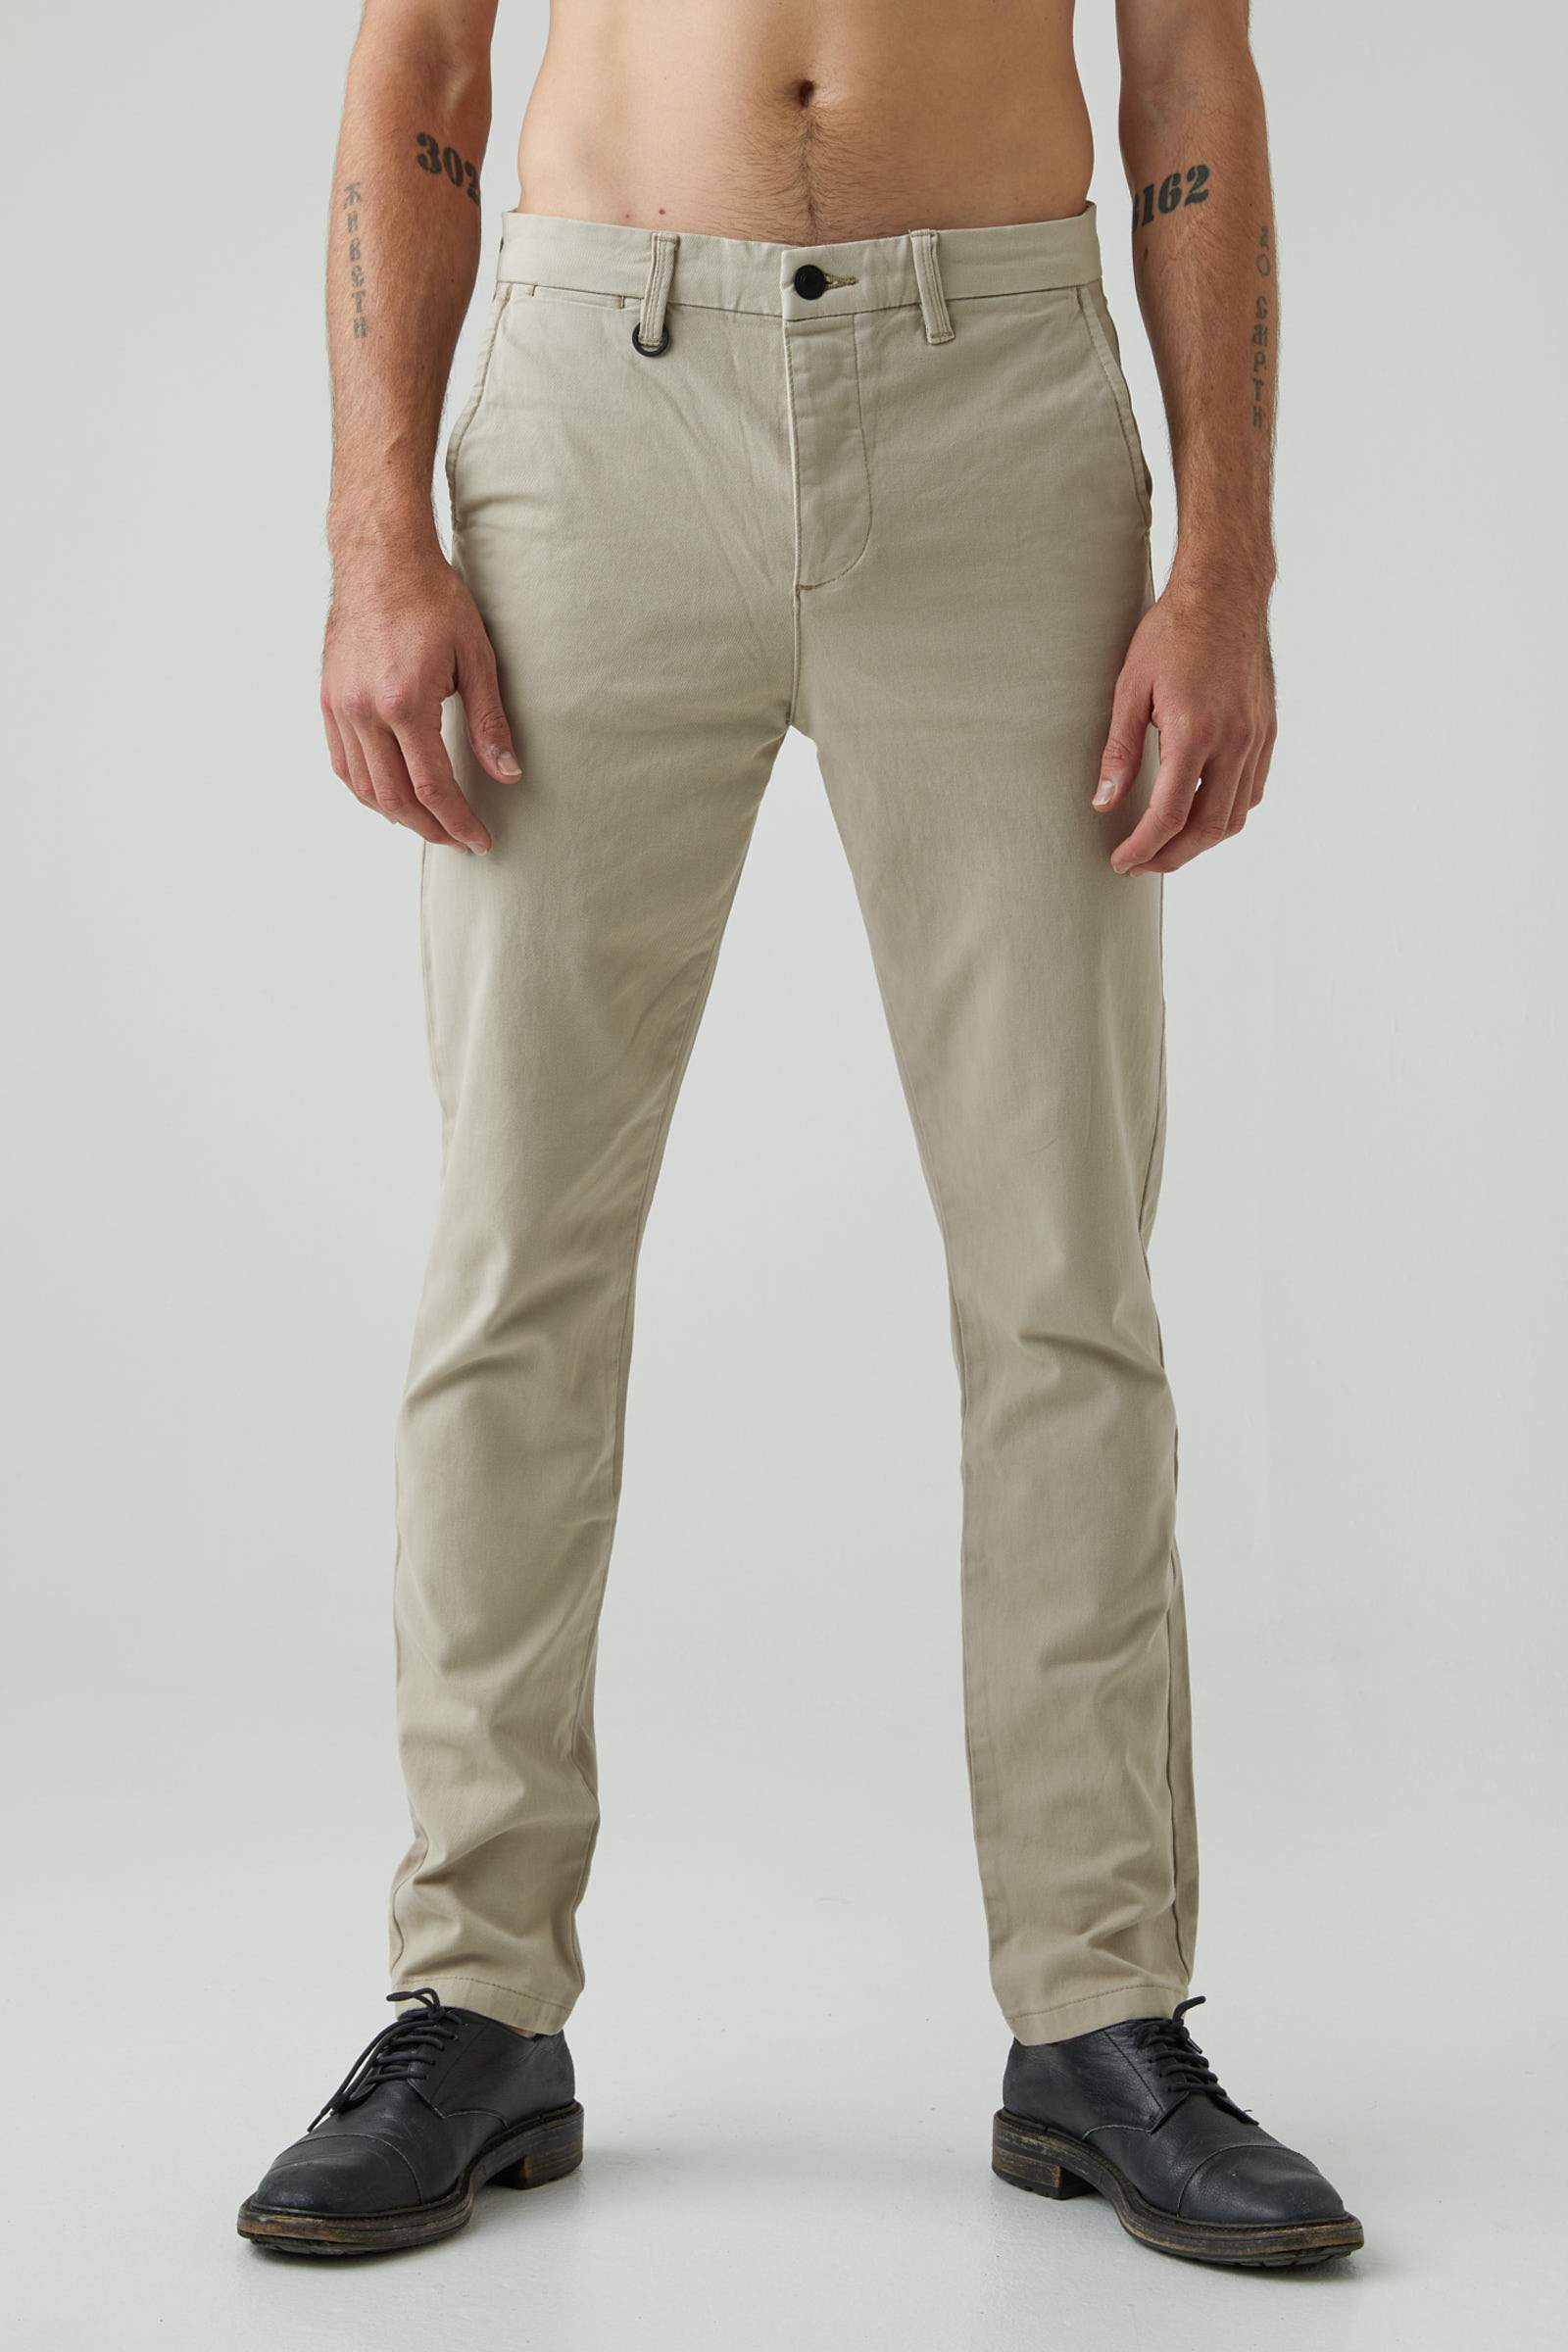 Clash Slim Pant - Washed Stone